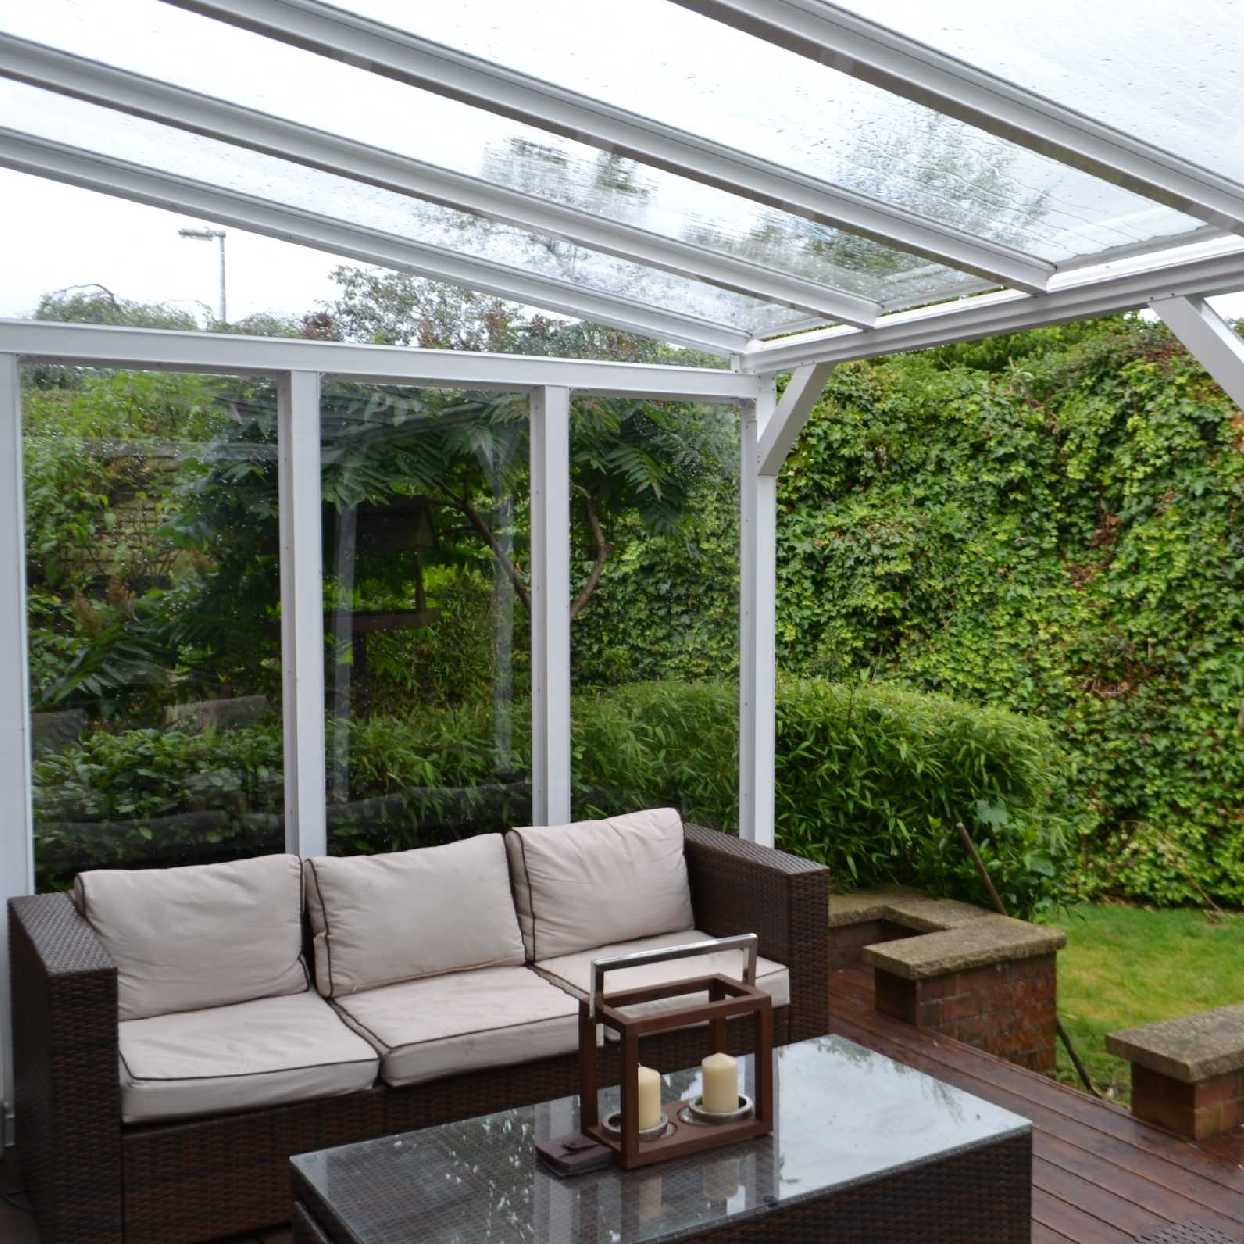 Omega Smart White Lean-To Canopy with 6mm Glass Clear Plate Polycarbonate Glazing - 5.6m (W) x 1.5m (P), (3) Supporting Posts